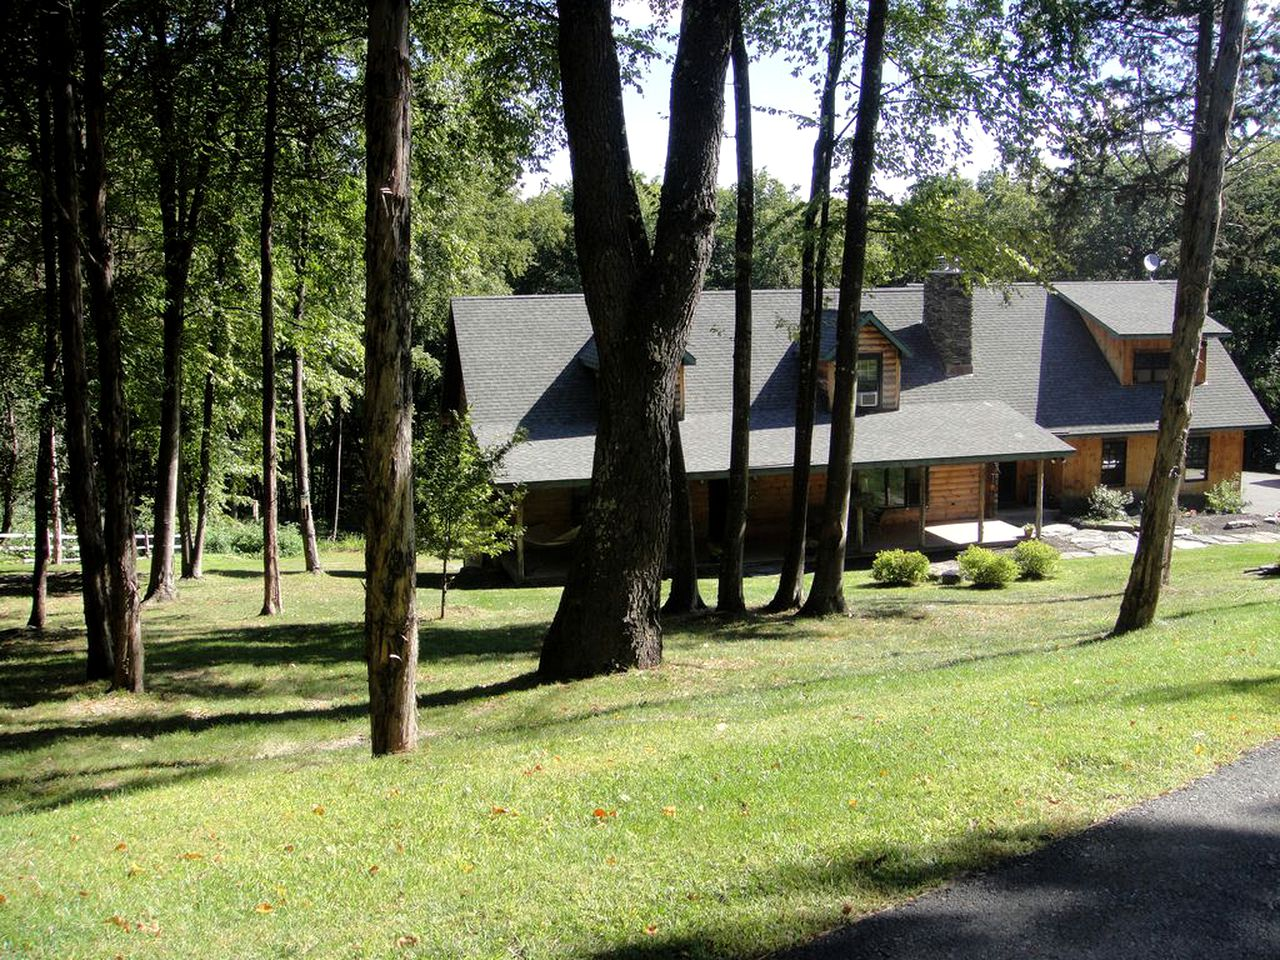 Log Cabins (Dover Plains, New York, United States)